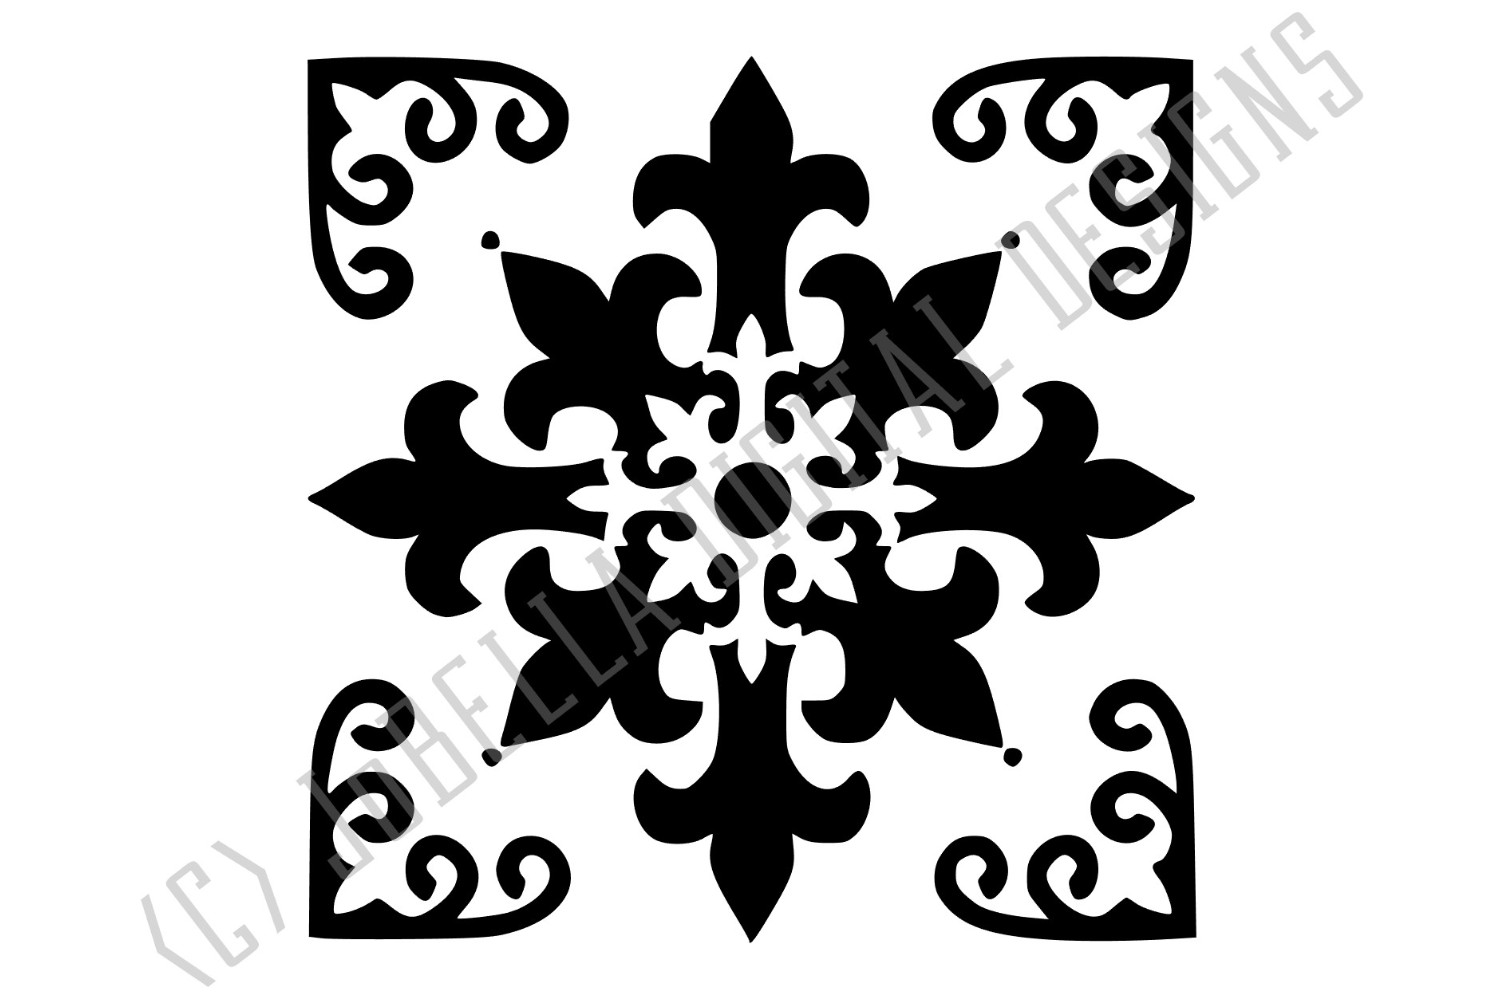 Spanish Tile 2 SVG, Stencil Template and Printable example image 2